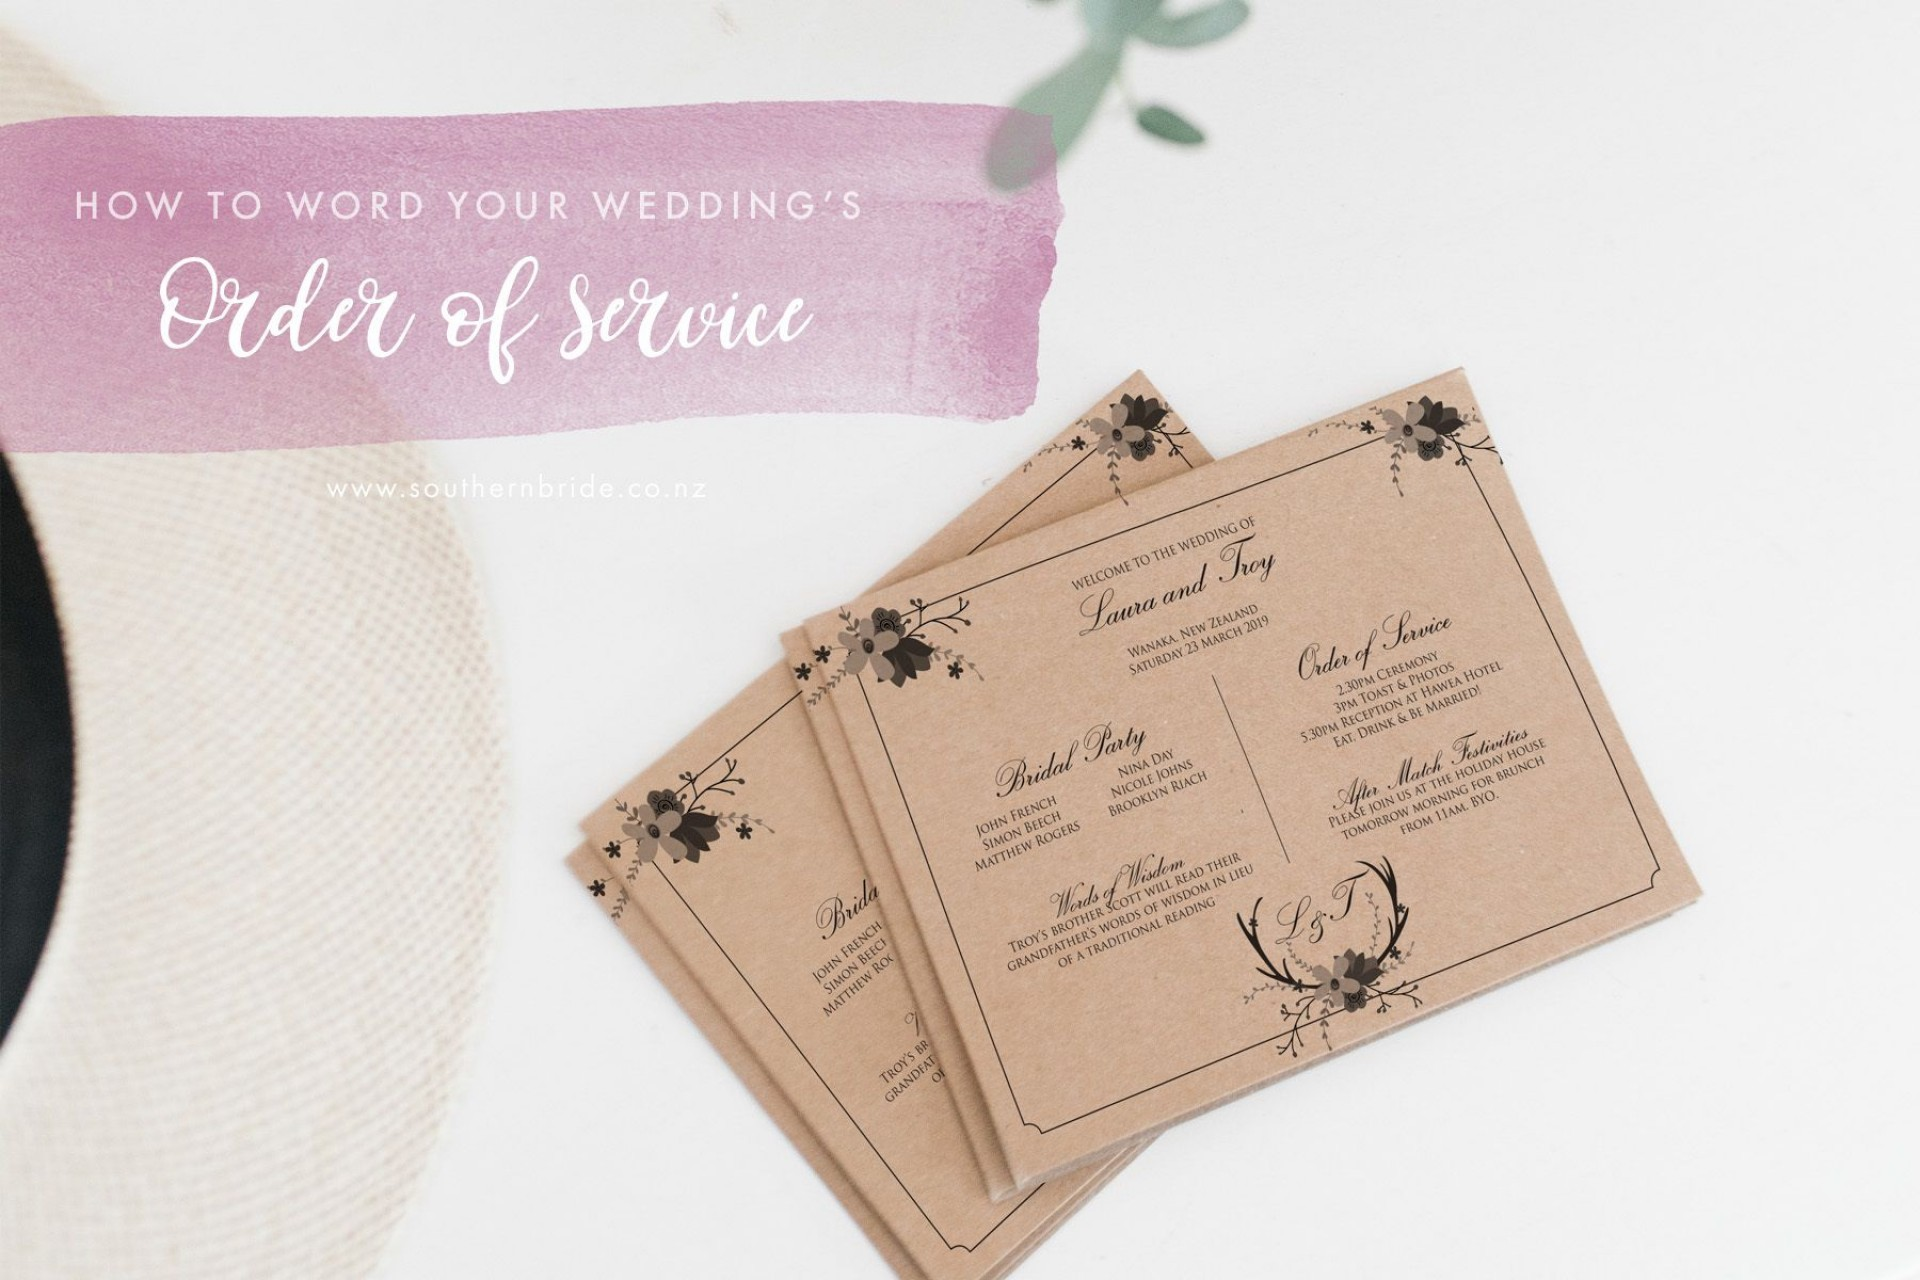 007 Unique Free Wedding Order Of Service Template Word Image  Microsoft1920